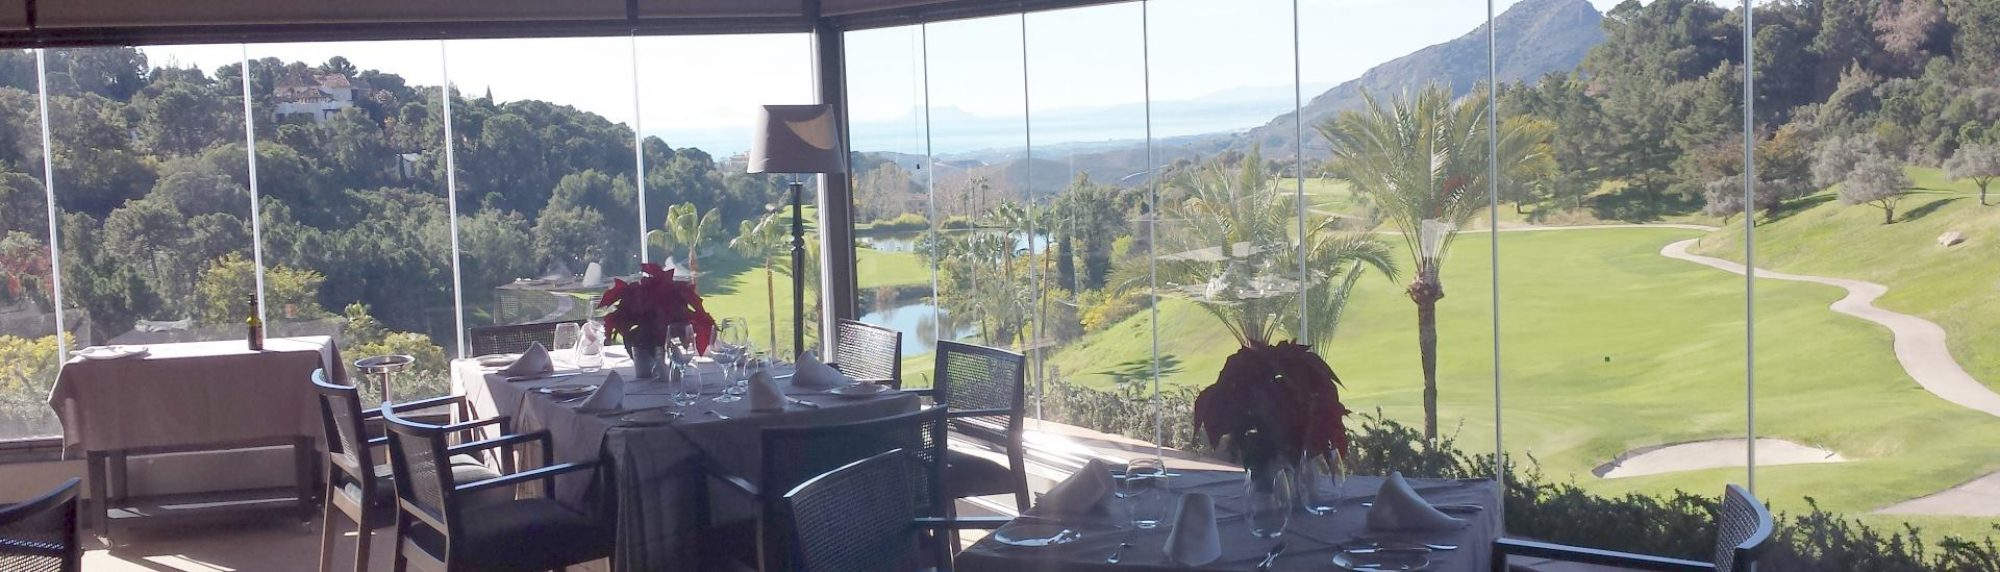 la zagaleta country club restaurant view 5